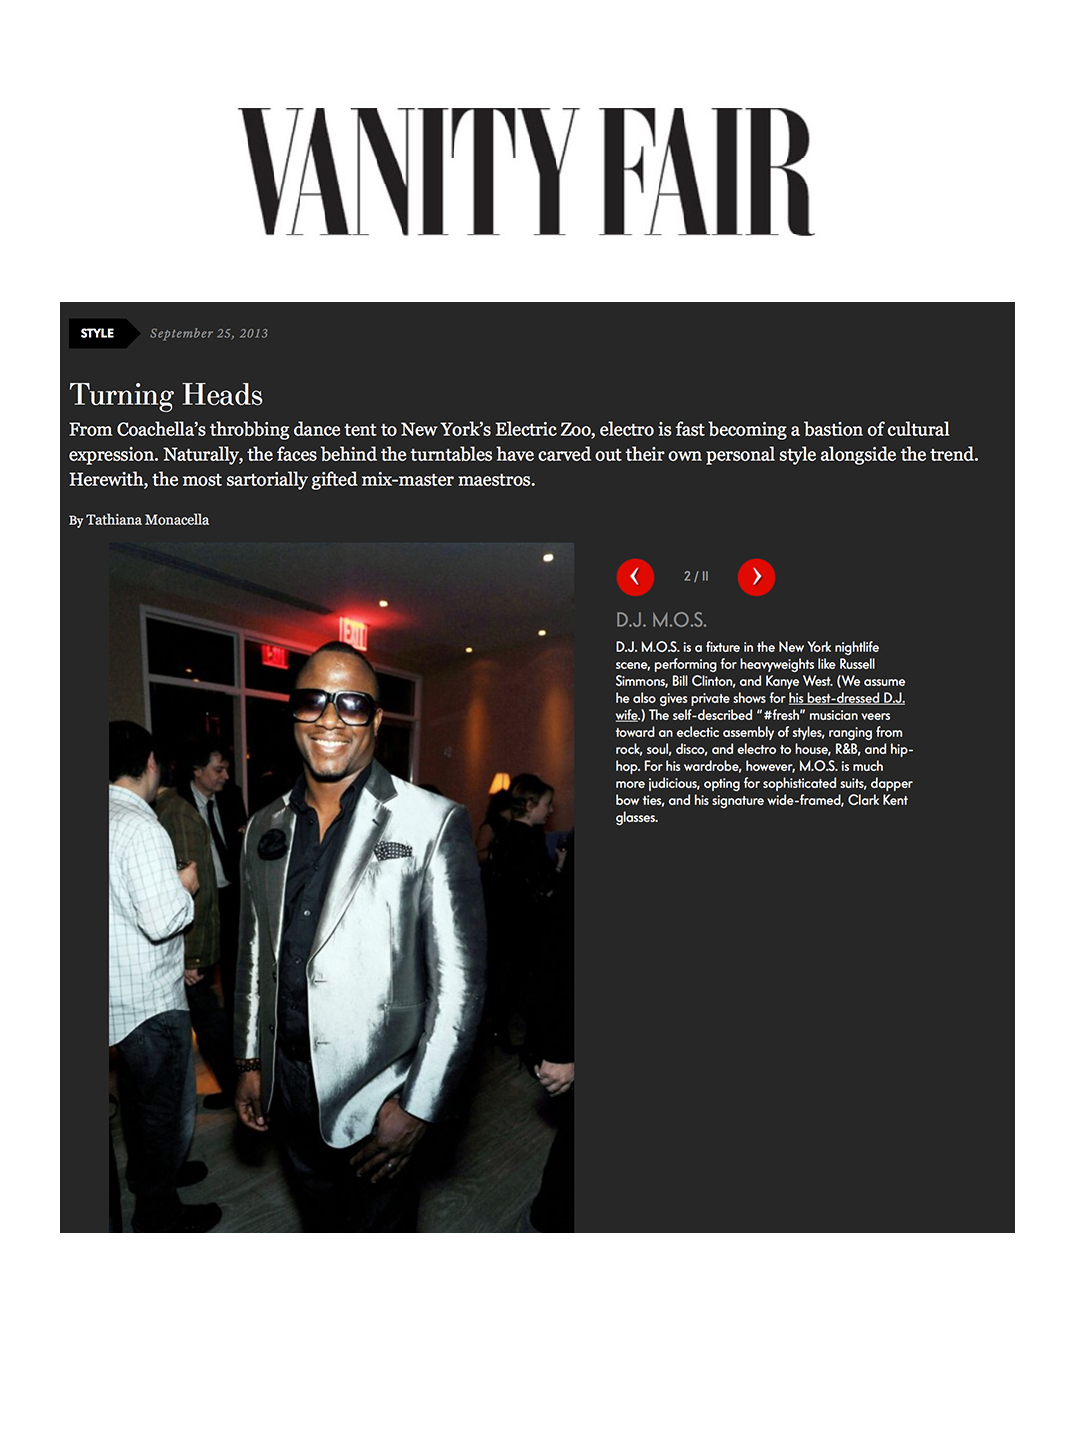 DJ M.O.S. Vanity Fair Best Dressed